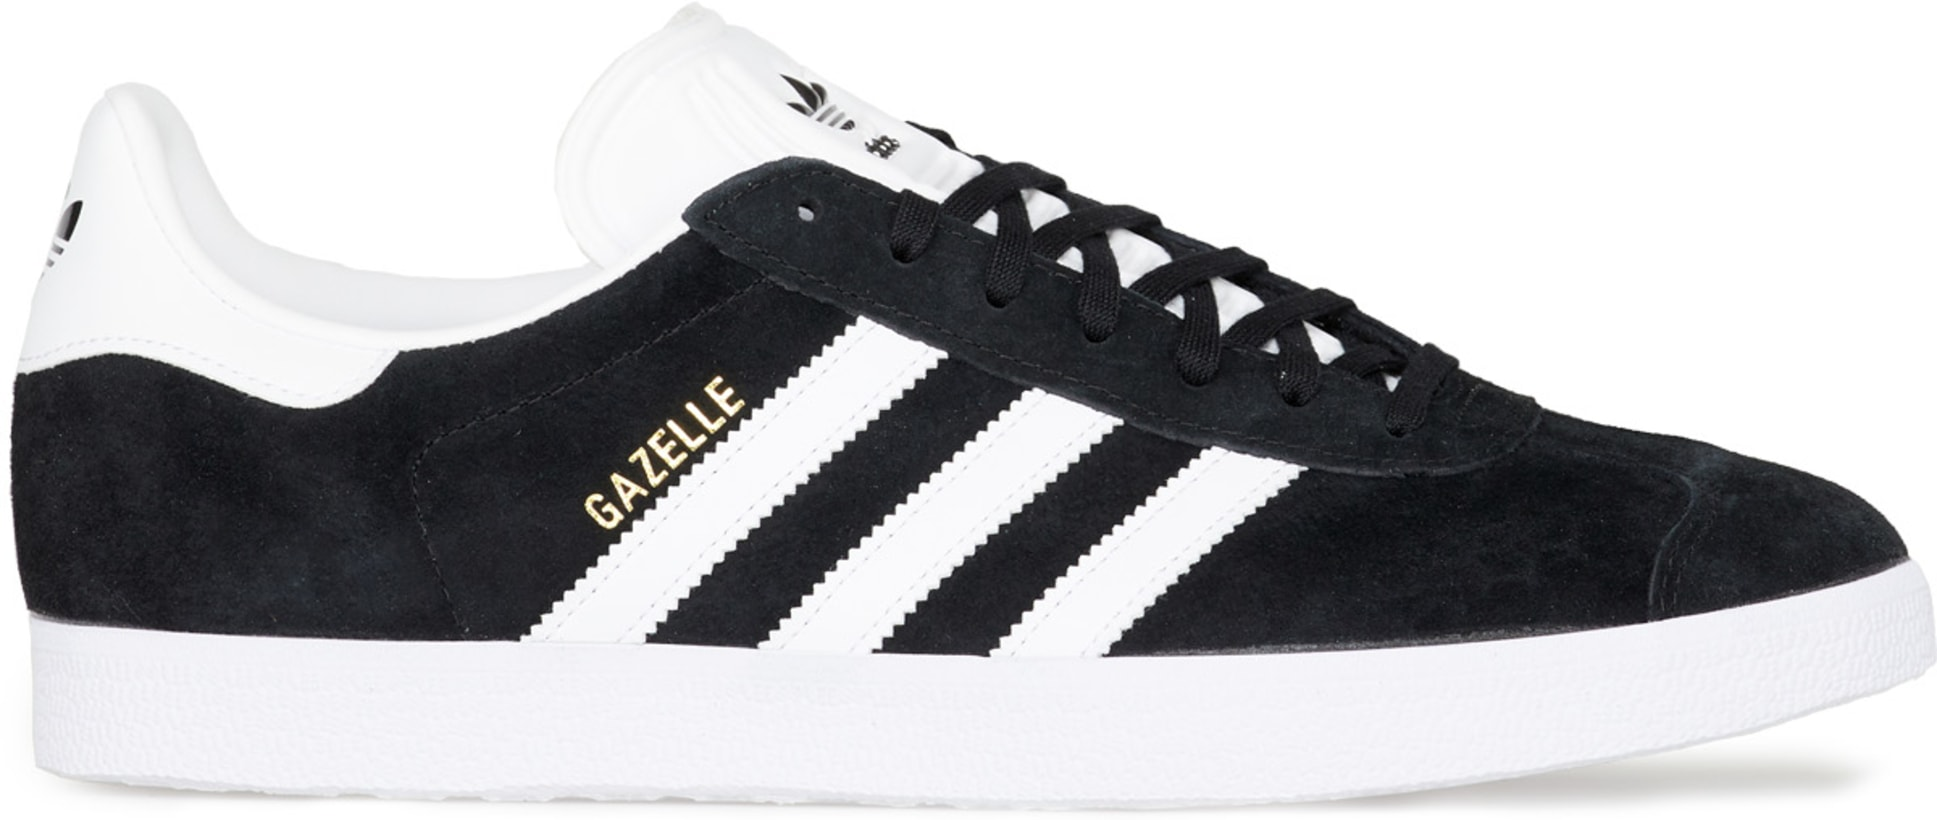 8090f75e215 adidas Originals  Gazelle - Core Black White Gold Metallic